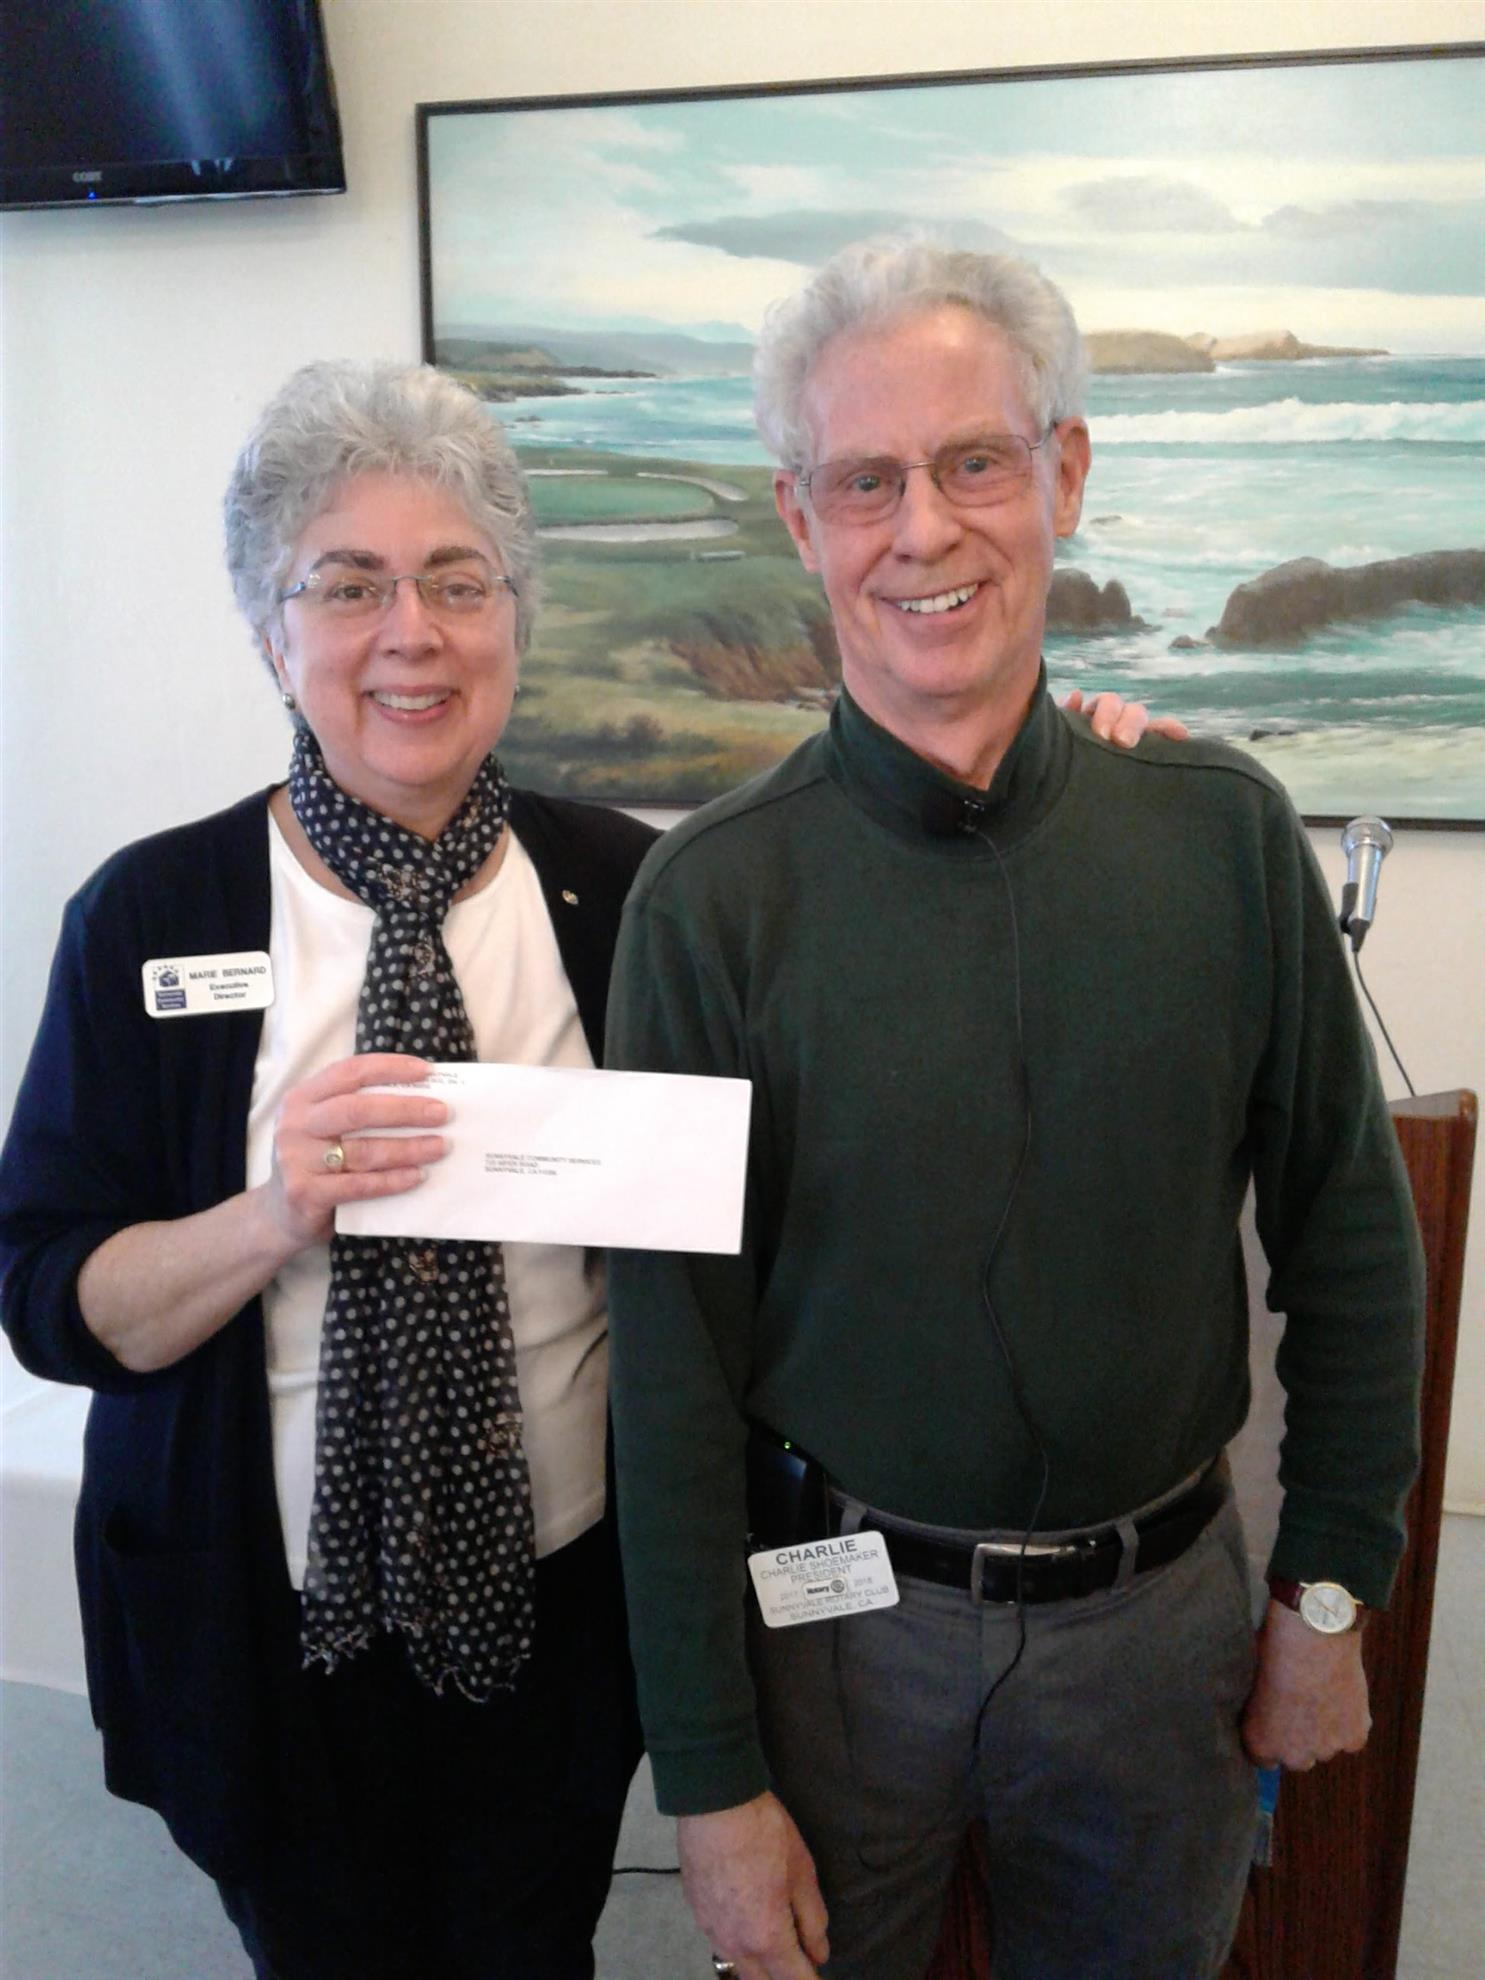 Rotary donates $30,000 to Sunnyvale Community Services